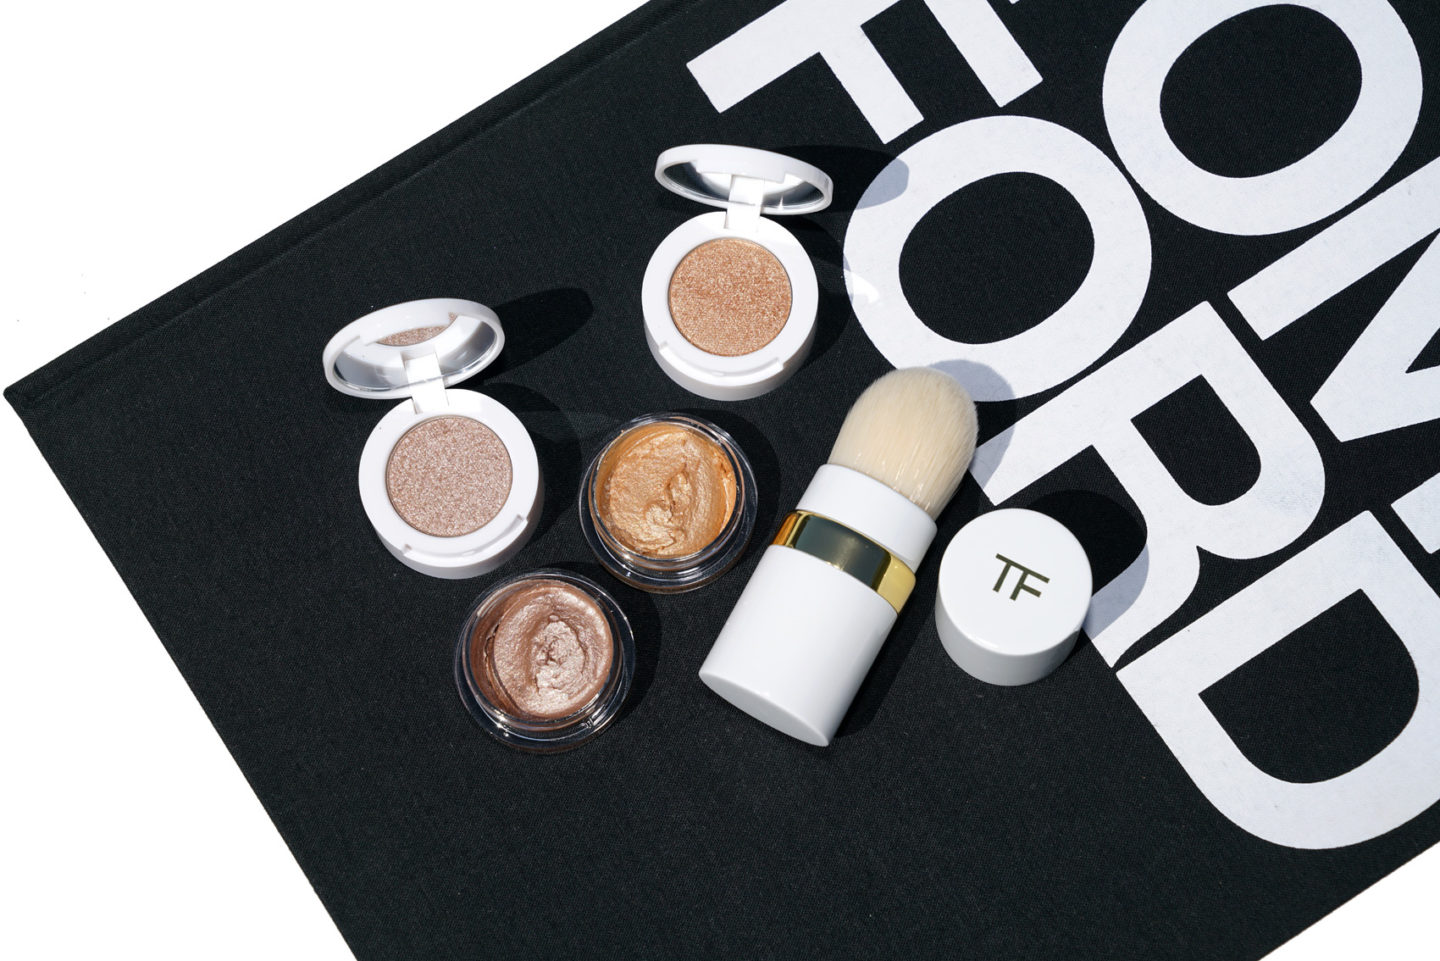 Tom Ford Summer Soleil Young Adonis and Sun Worship | The Beauty Look Book